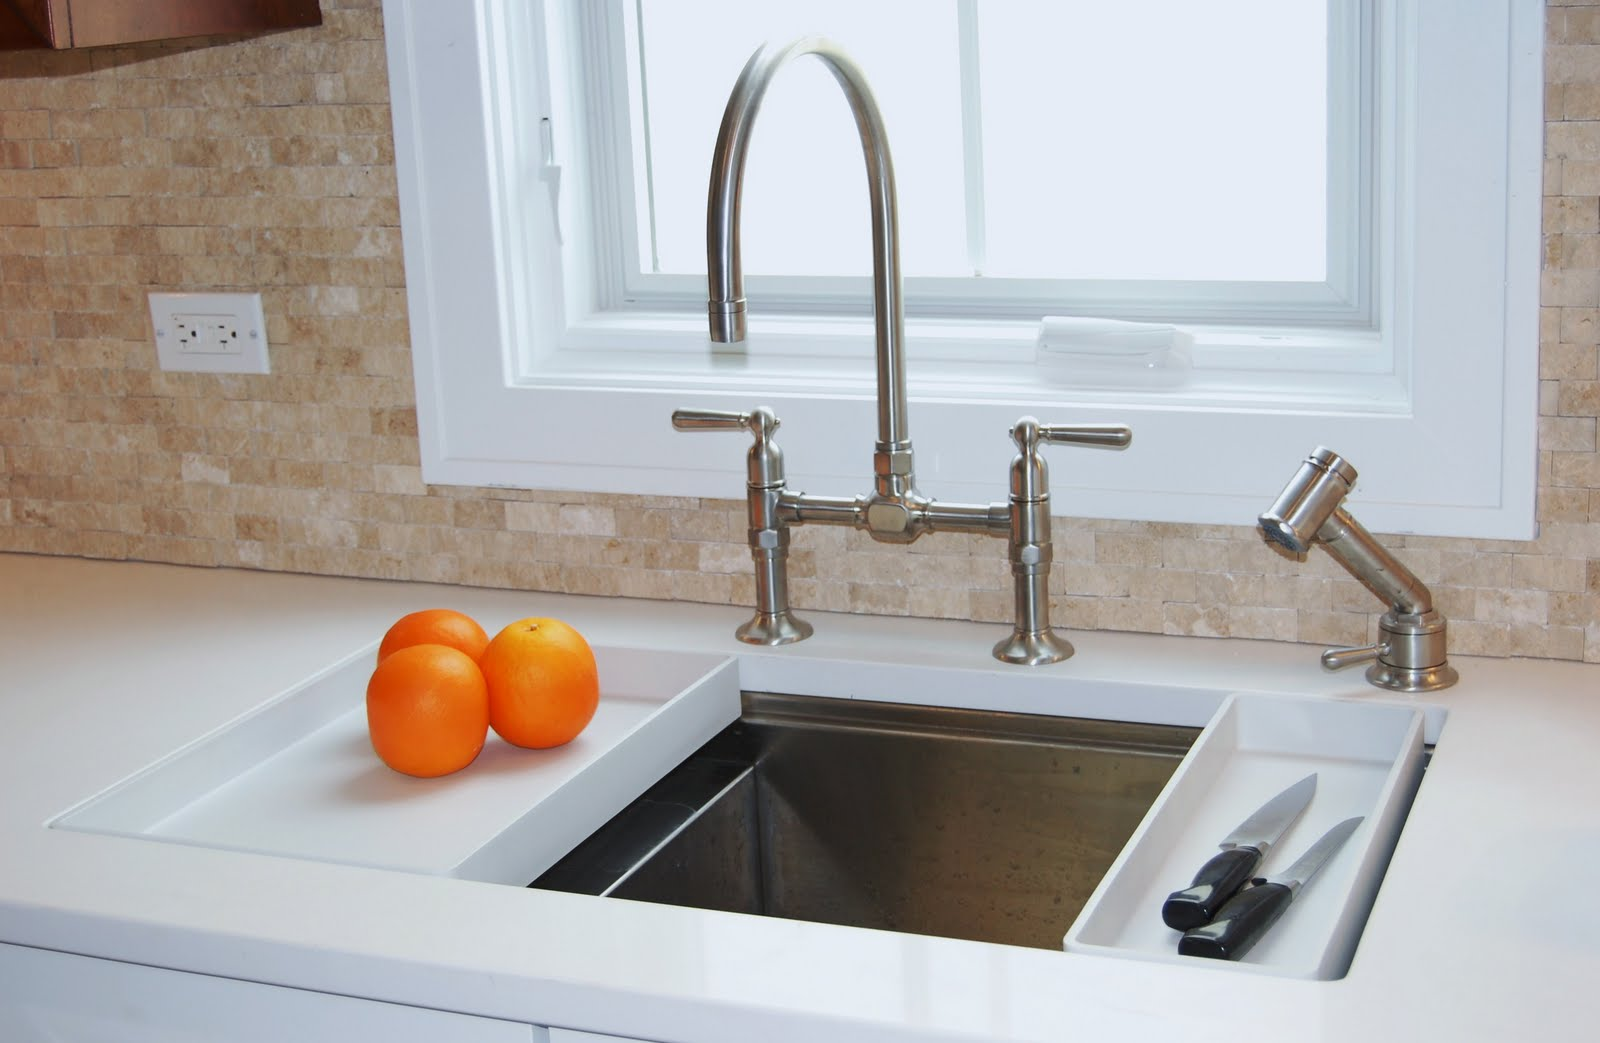 amazing kohler sinks with bridge faucet before the white window ideas